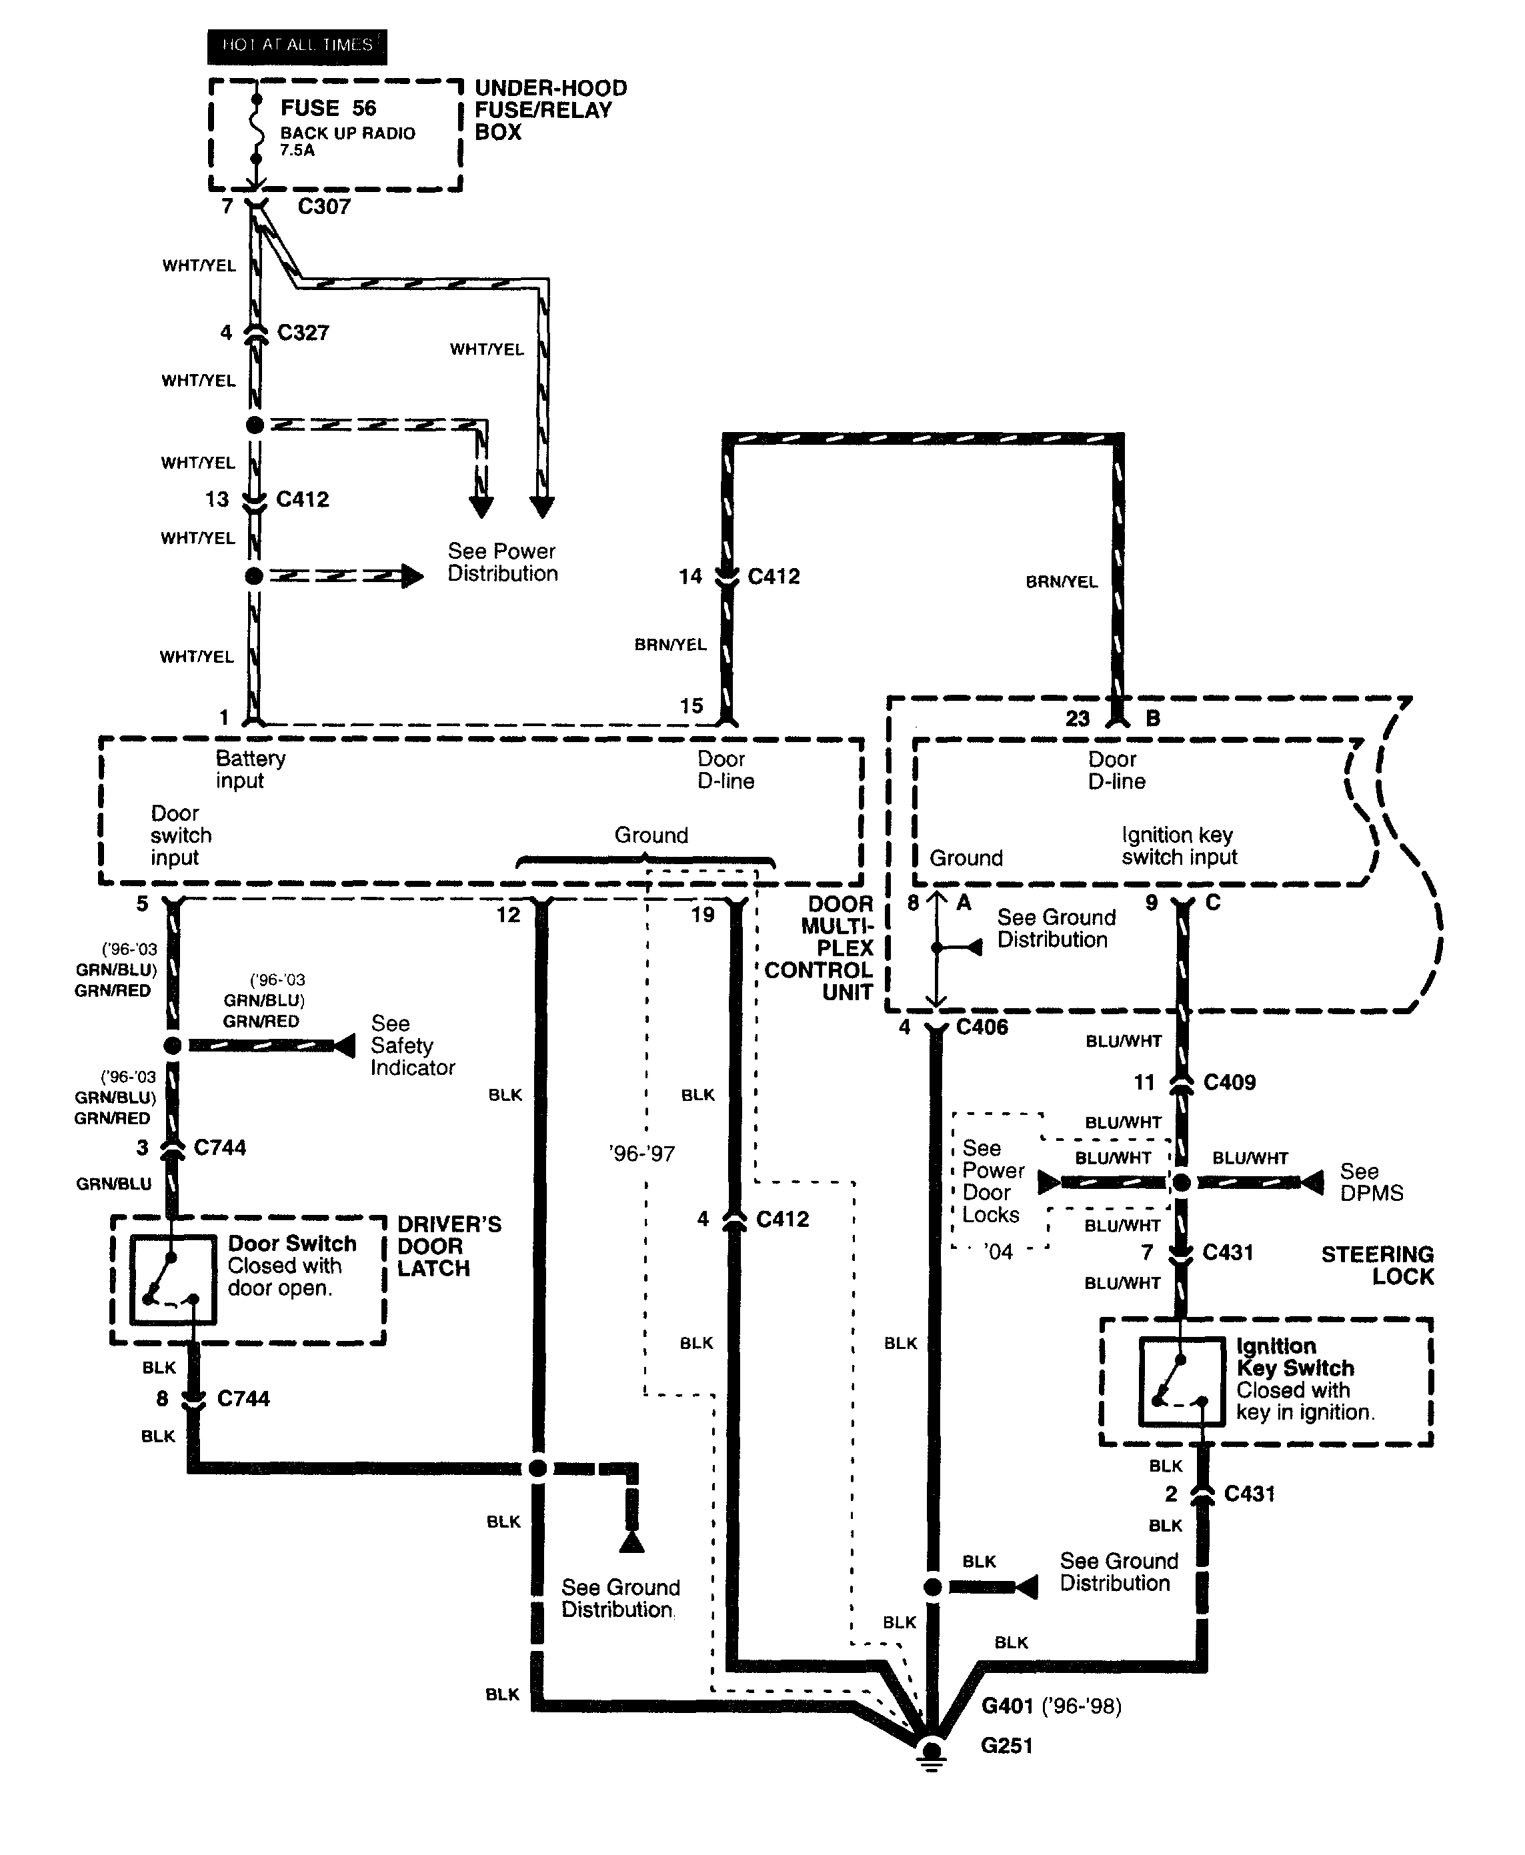 hight resolution of 03 monte carlo wiring diagram